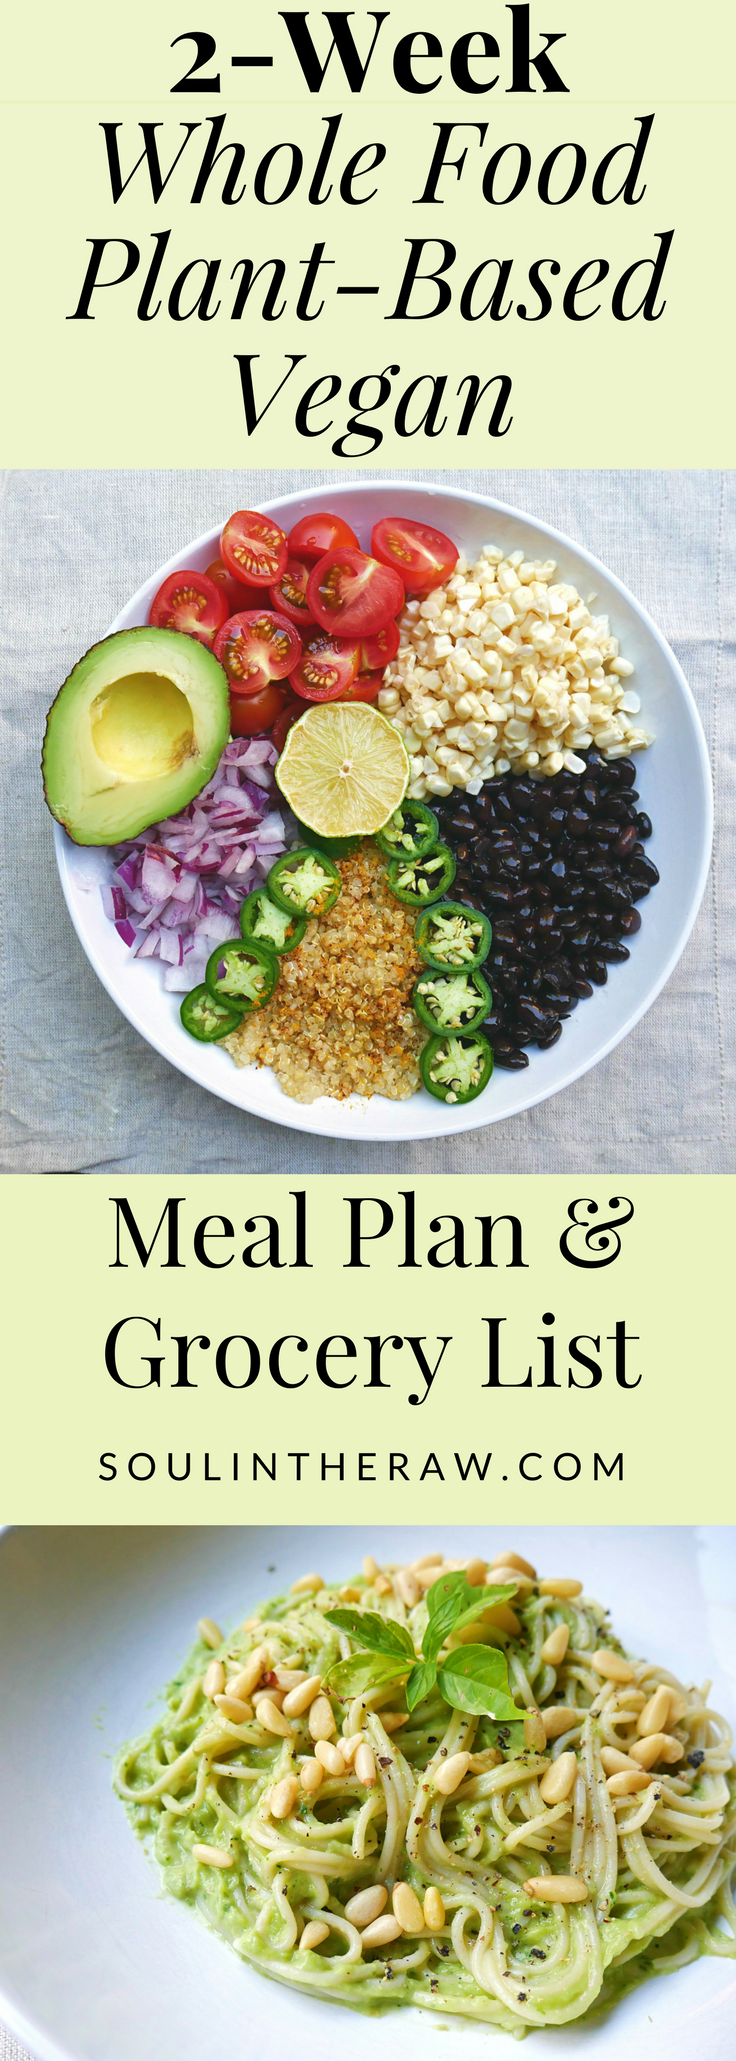 This Amazing 2 Week Vegan Meal Plan Is Packed With Delicious Whole Food Plant Based Recipes And Vegan Re Vegan Meal Plans Whole Food Recipes Vegan Grocery List